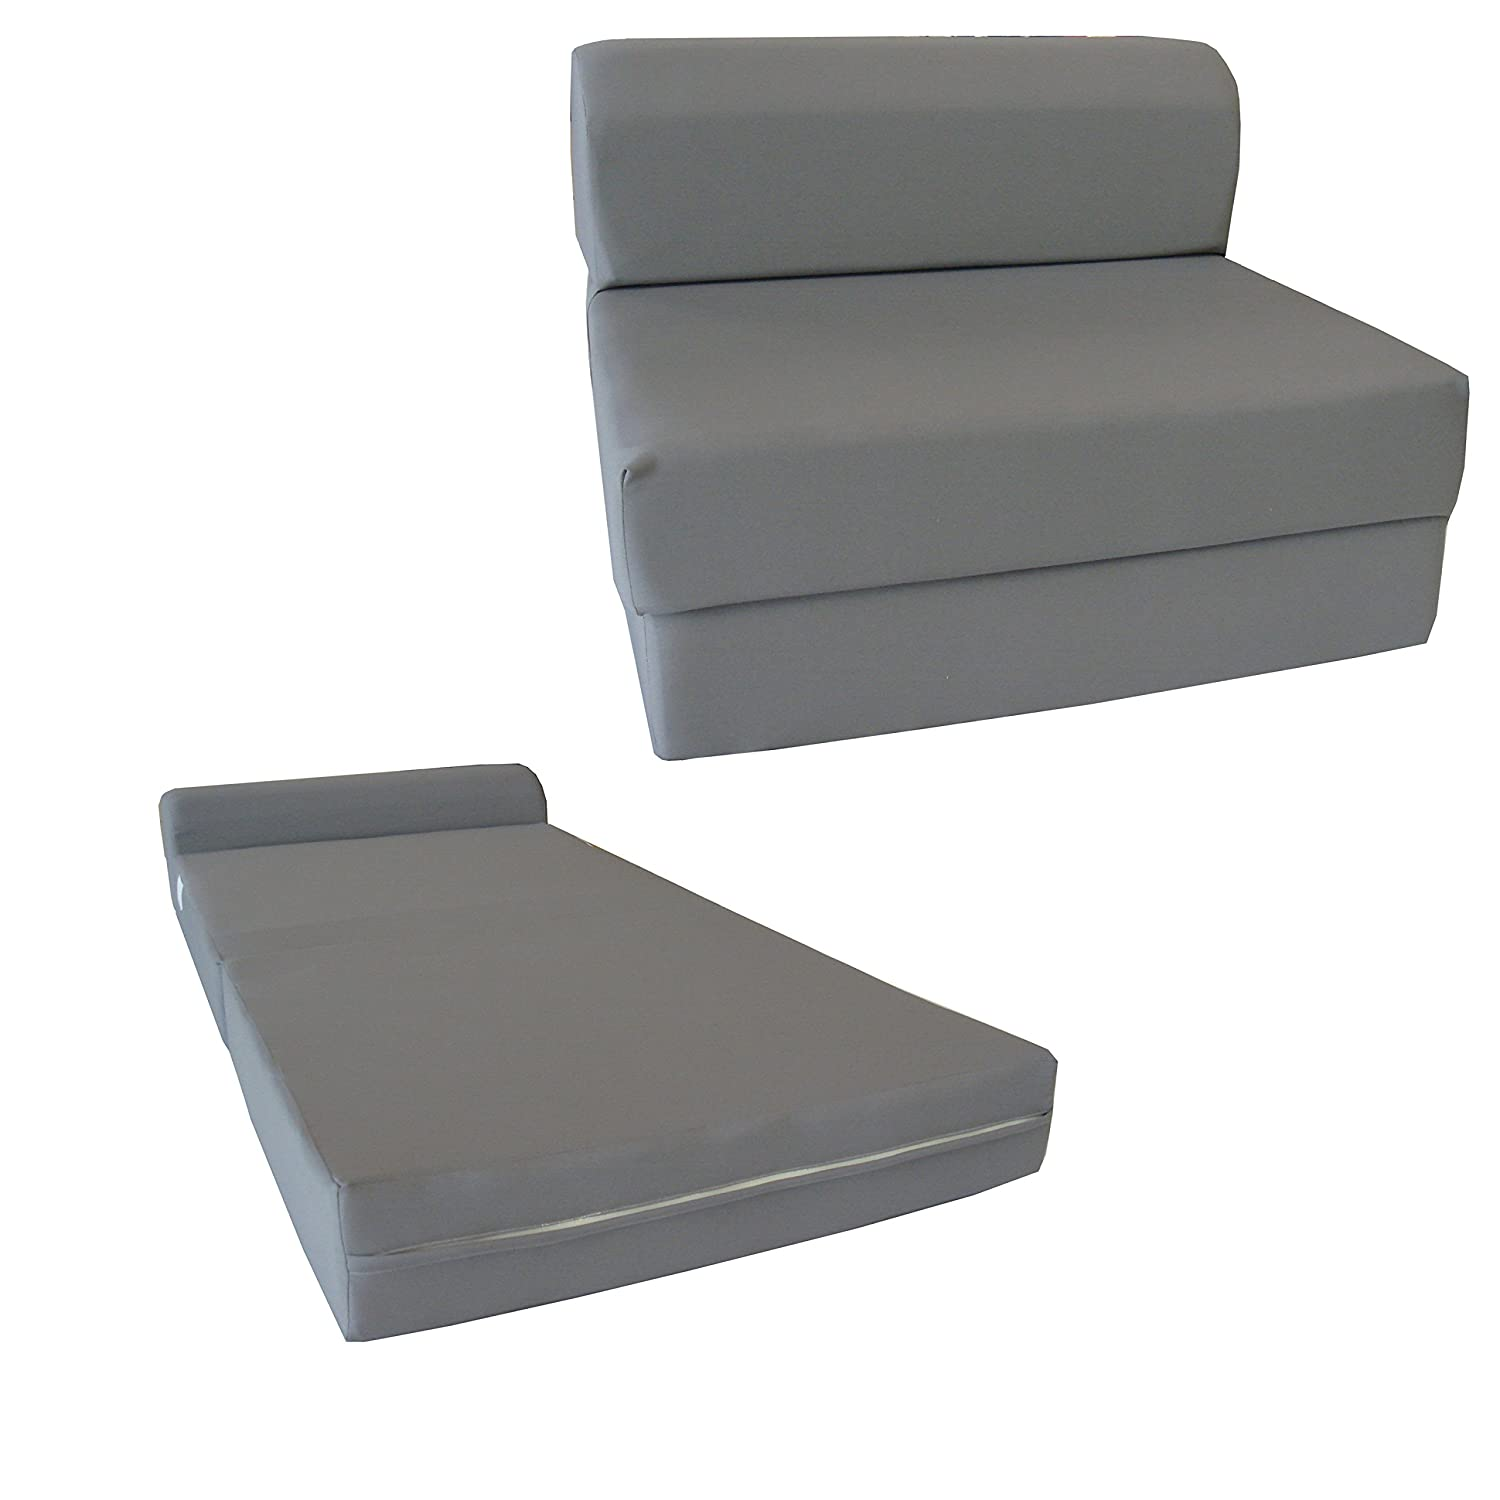 folding foam mattress. Amazon.com: Sleeper Chair Folding Foam Bed - Studio Mattress, Folded  Sofa. (6Tx48Wx72L, Gray (Charcoal)): Kitchen \u0026 Dining Folding Foam Mattress E